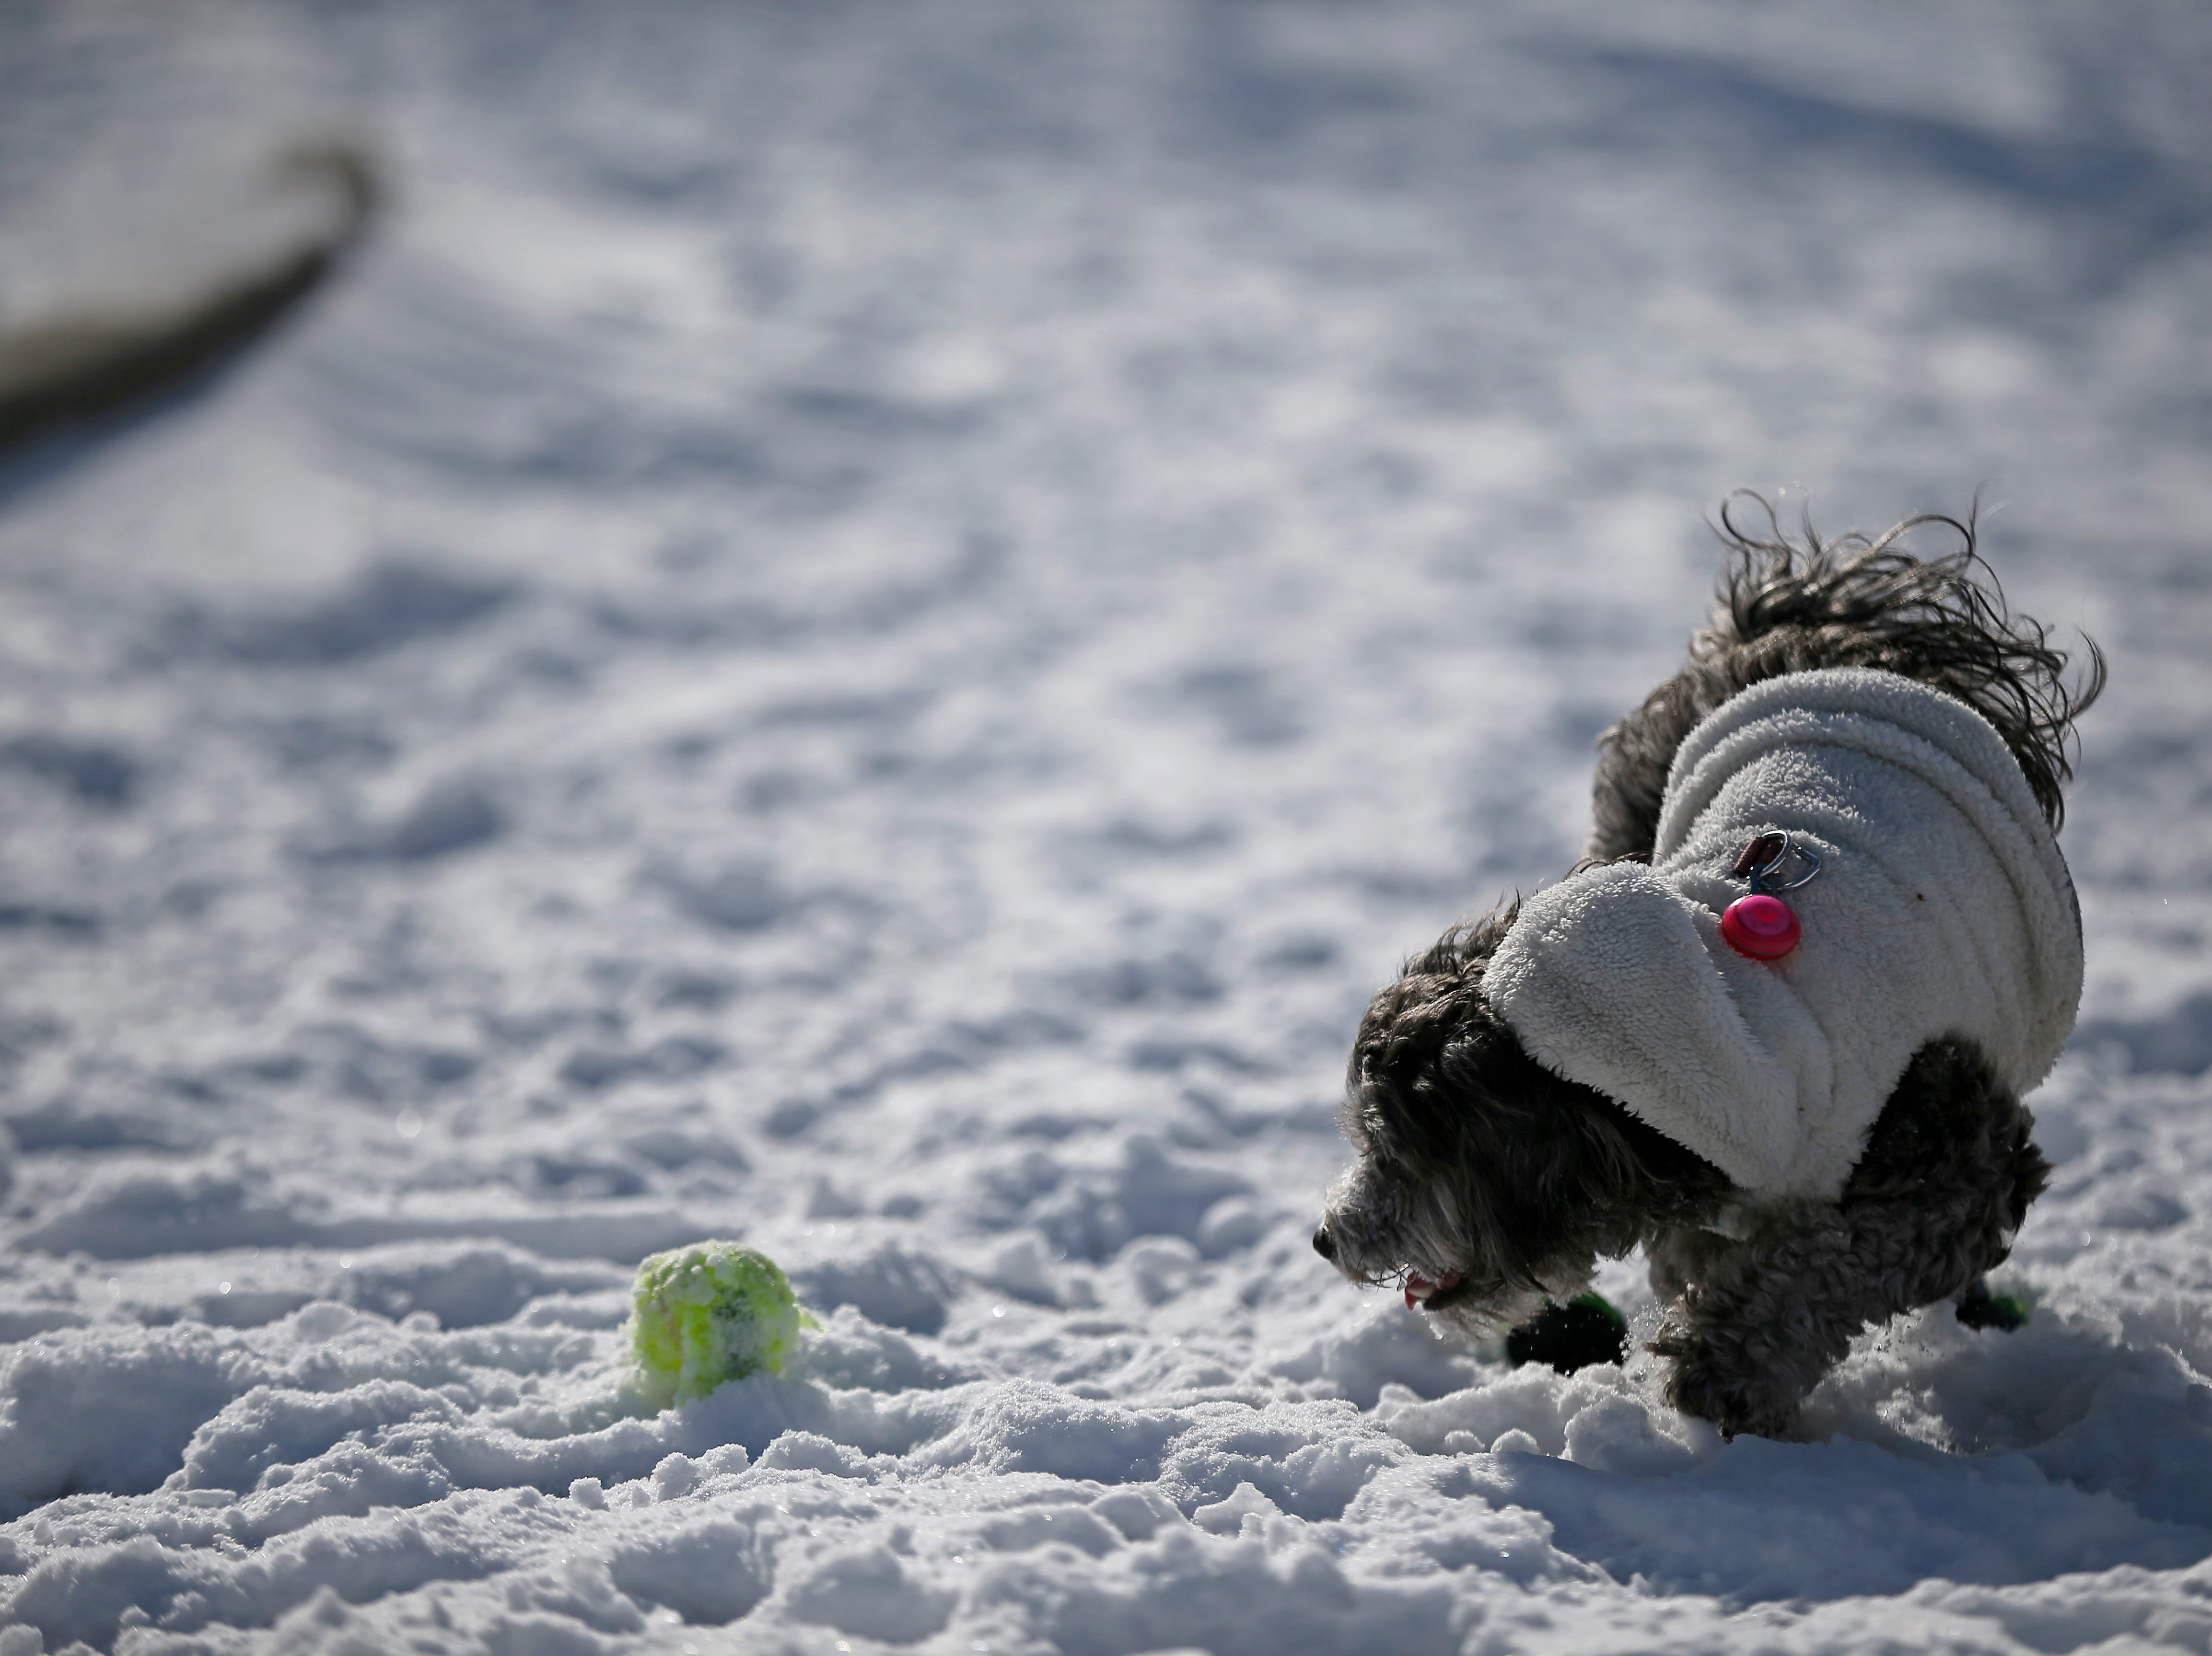 Metzli, 1, plays with her owner Jazmin Bernal, 27, of Over-the-Rhine, at Washington Park in the Over-the-Rhine neighborhood of Cincinnati on Sunday, Jan. 20, 2019. Temperatures remain below 15 degrees with windchills as low as 4 in the region Sunday.